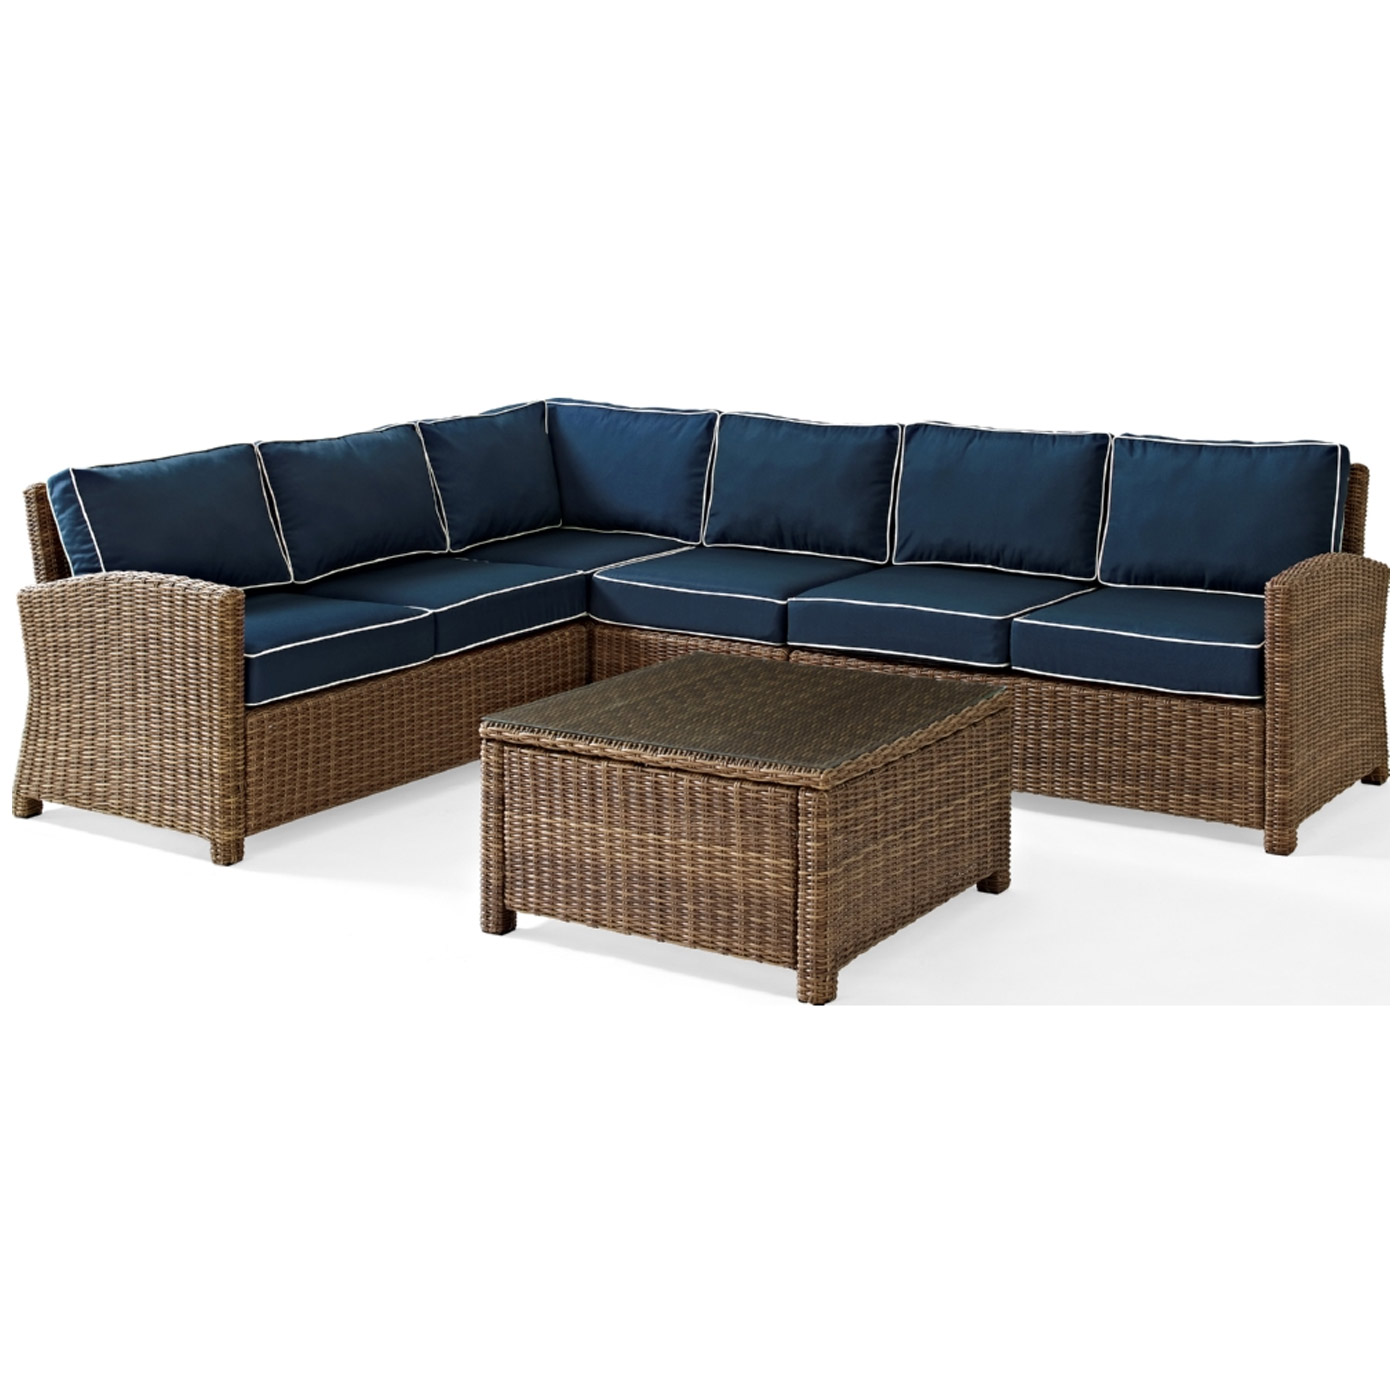 Crosley Biltmore 5 Piece Wicker Sectional Conversation Set with